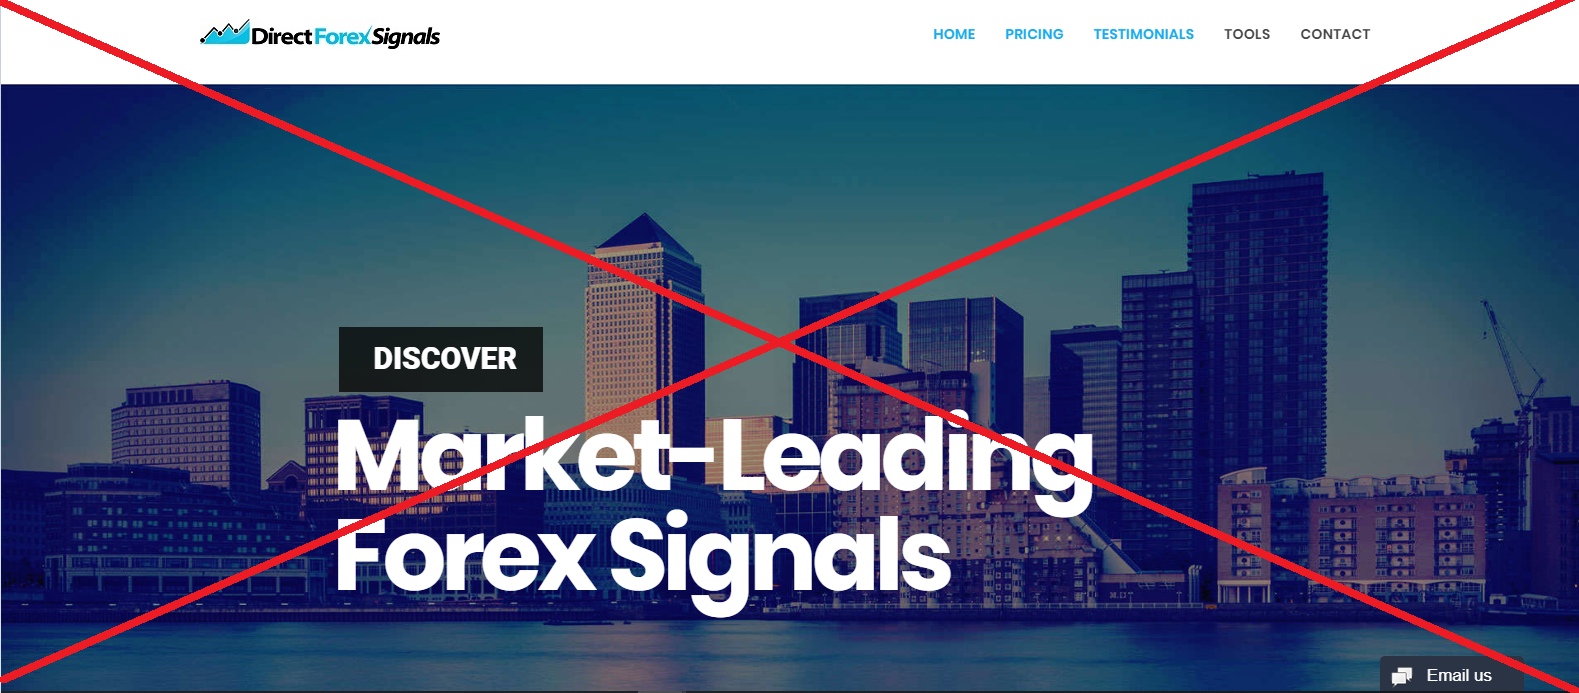 Direct Forex Signals (UK) Review (SCAM Alert) - Forex